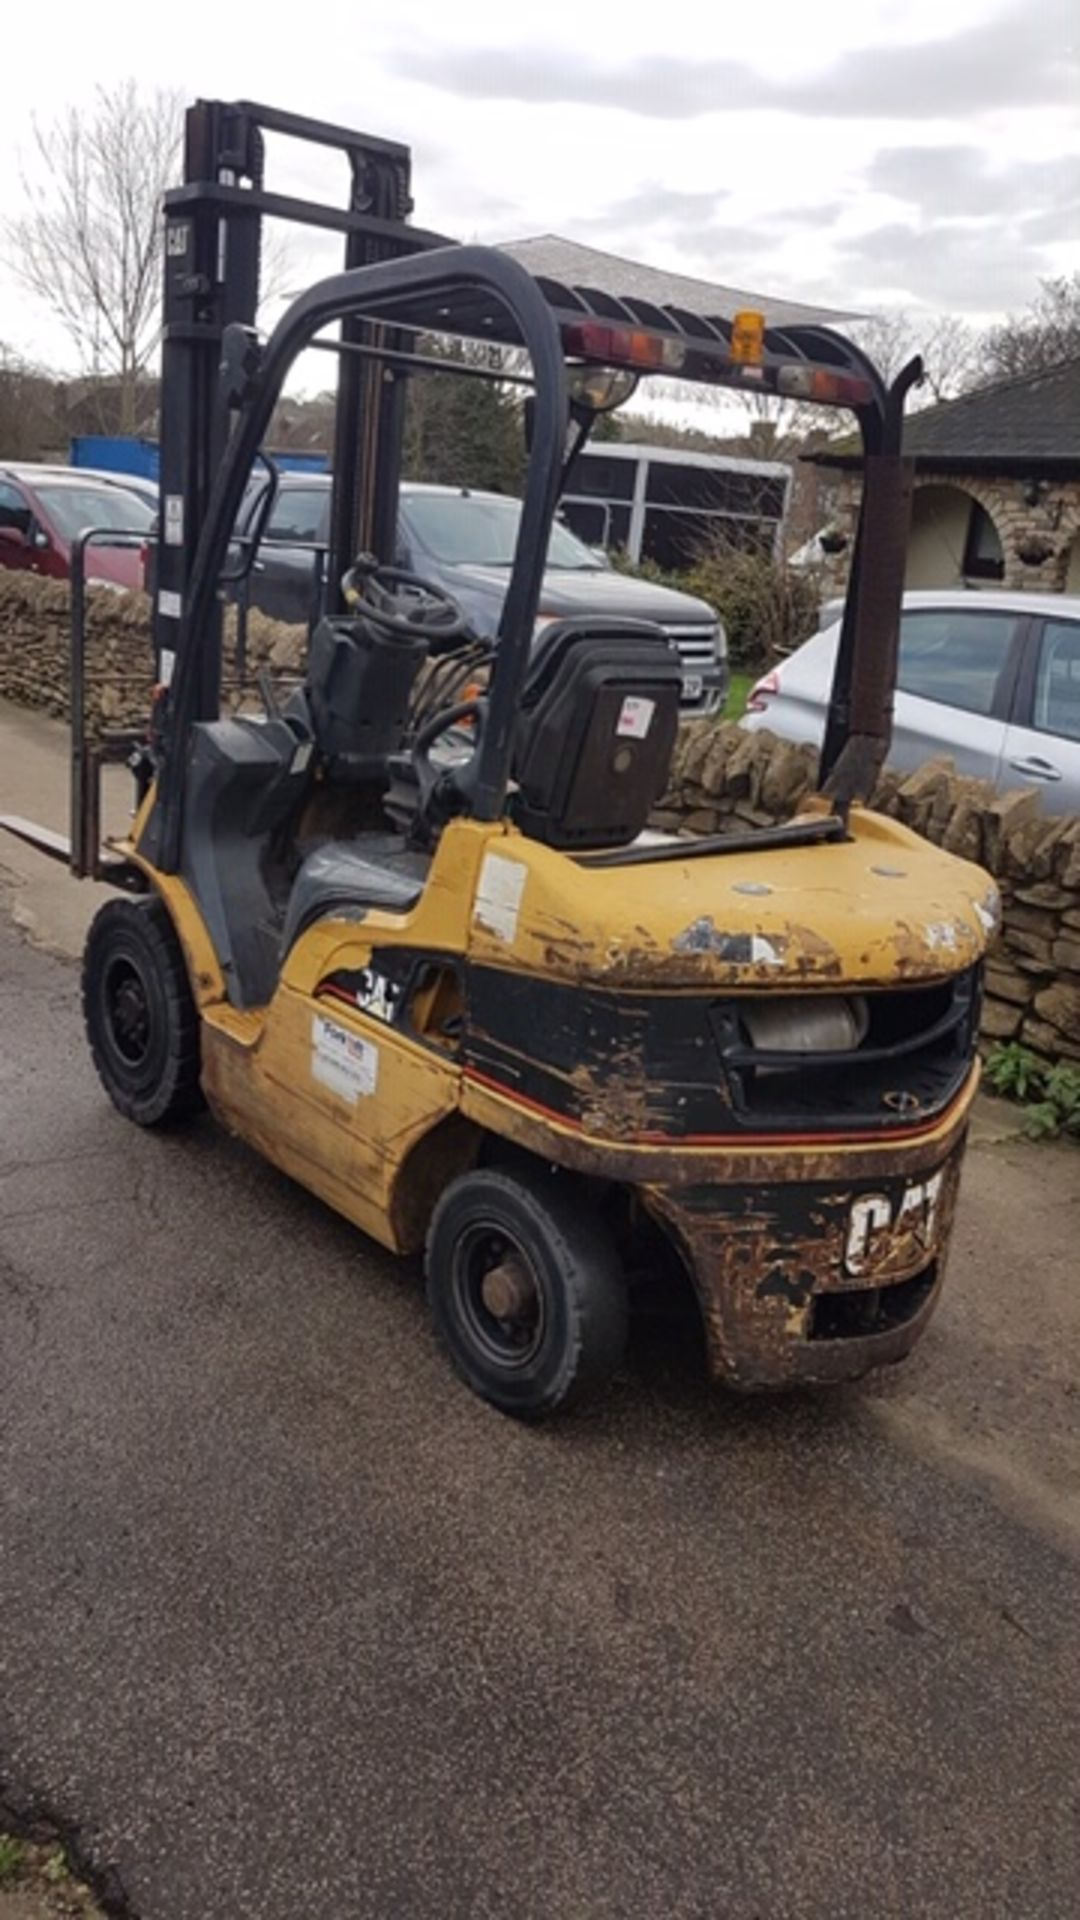 Lot 106 - CATERPILLAR DP25N DIESEL POWERED FORKLIFT TRUCK, YEAR 2004 BUILD, WITH SIDE SHIFT, 2.5 TONNE RATED